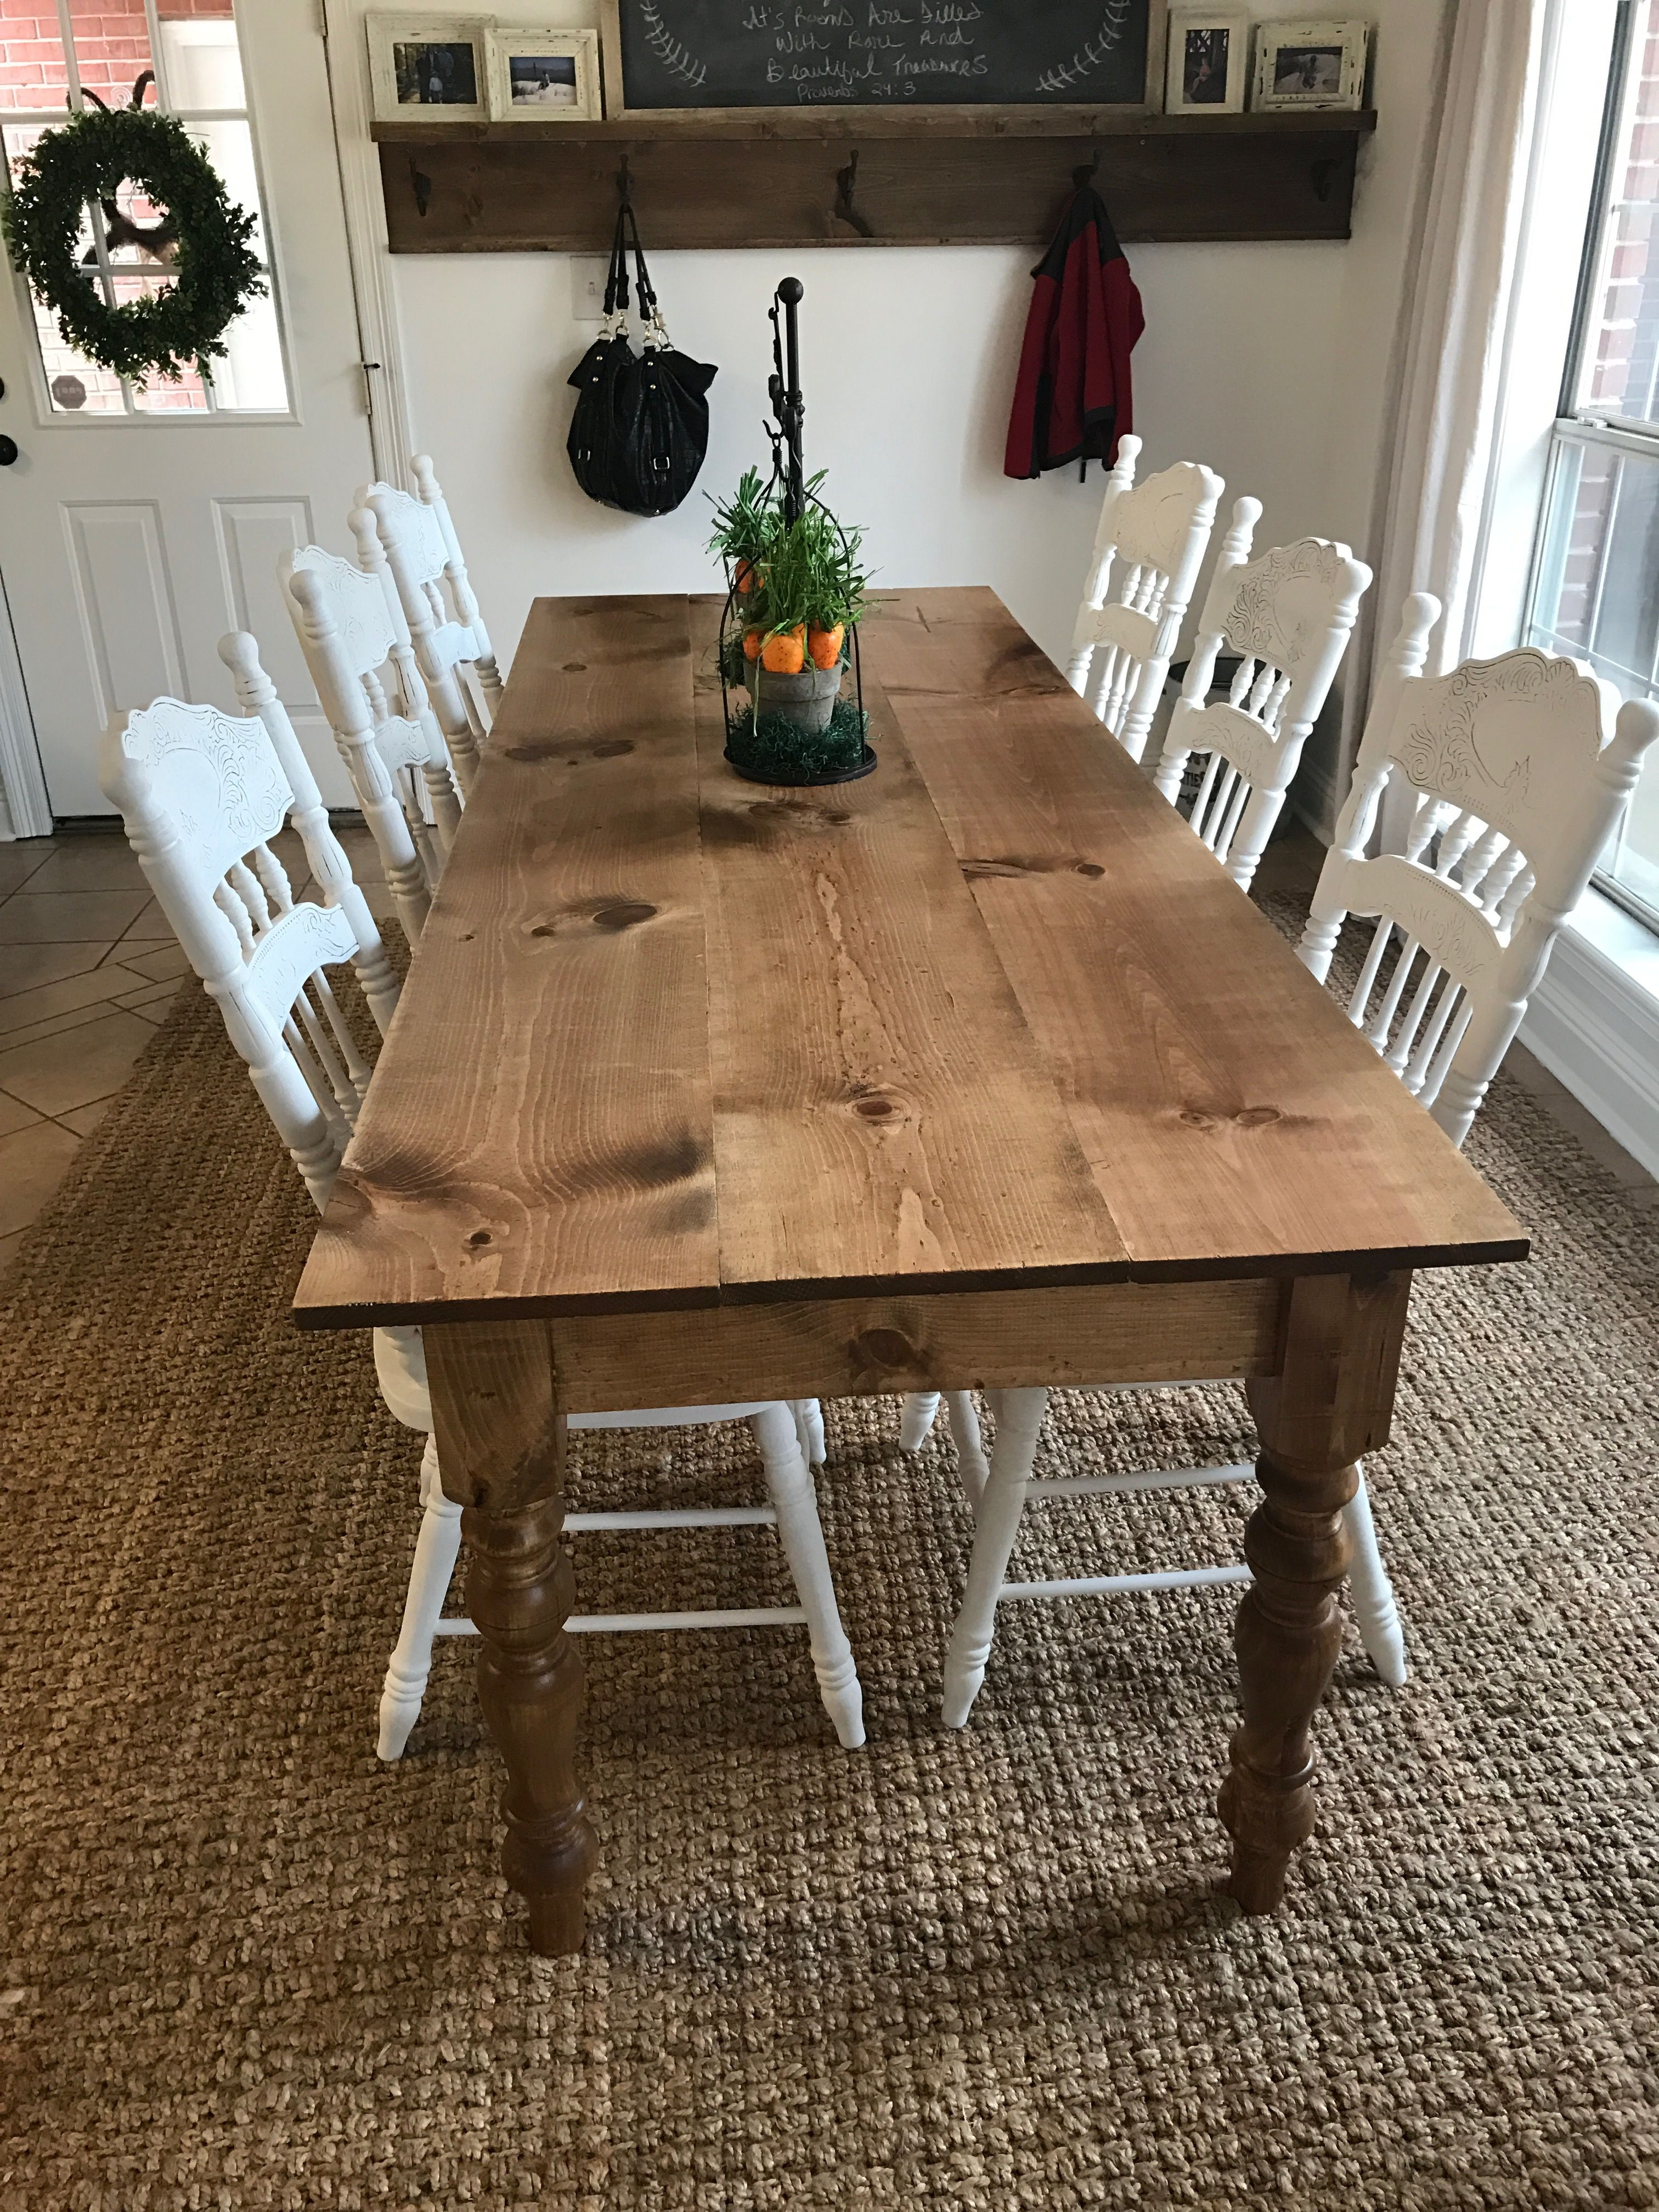 Diy Long Skinny Farmhouse Table 8ft Long 34 Wide 3 5 Legs And 5 5 Aprons Used Mi Farmhouse Dining Room Table Diy Dining Room Table Dining Table Design